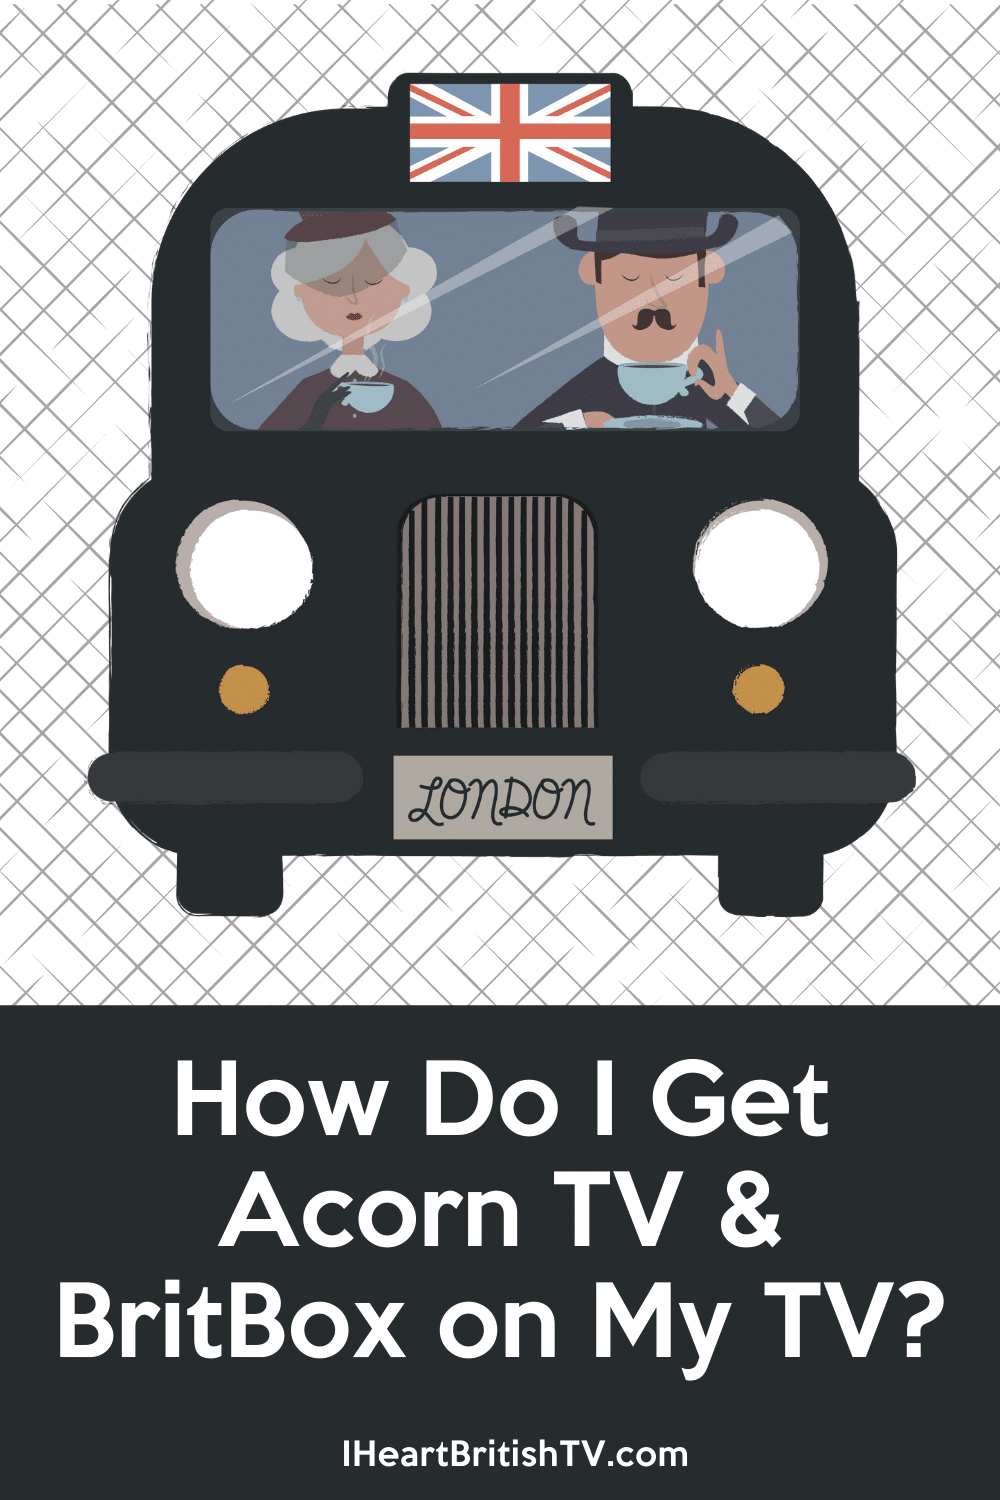 How Do I Get Acorn TV or BritBox on My TV? 4